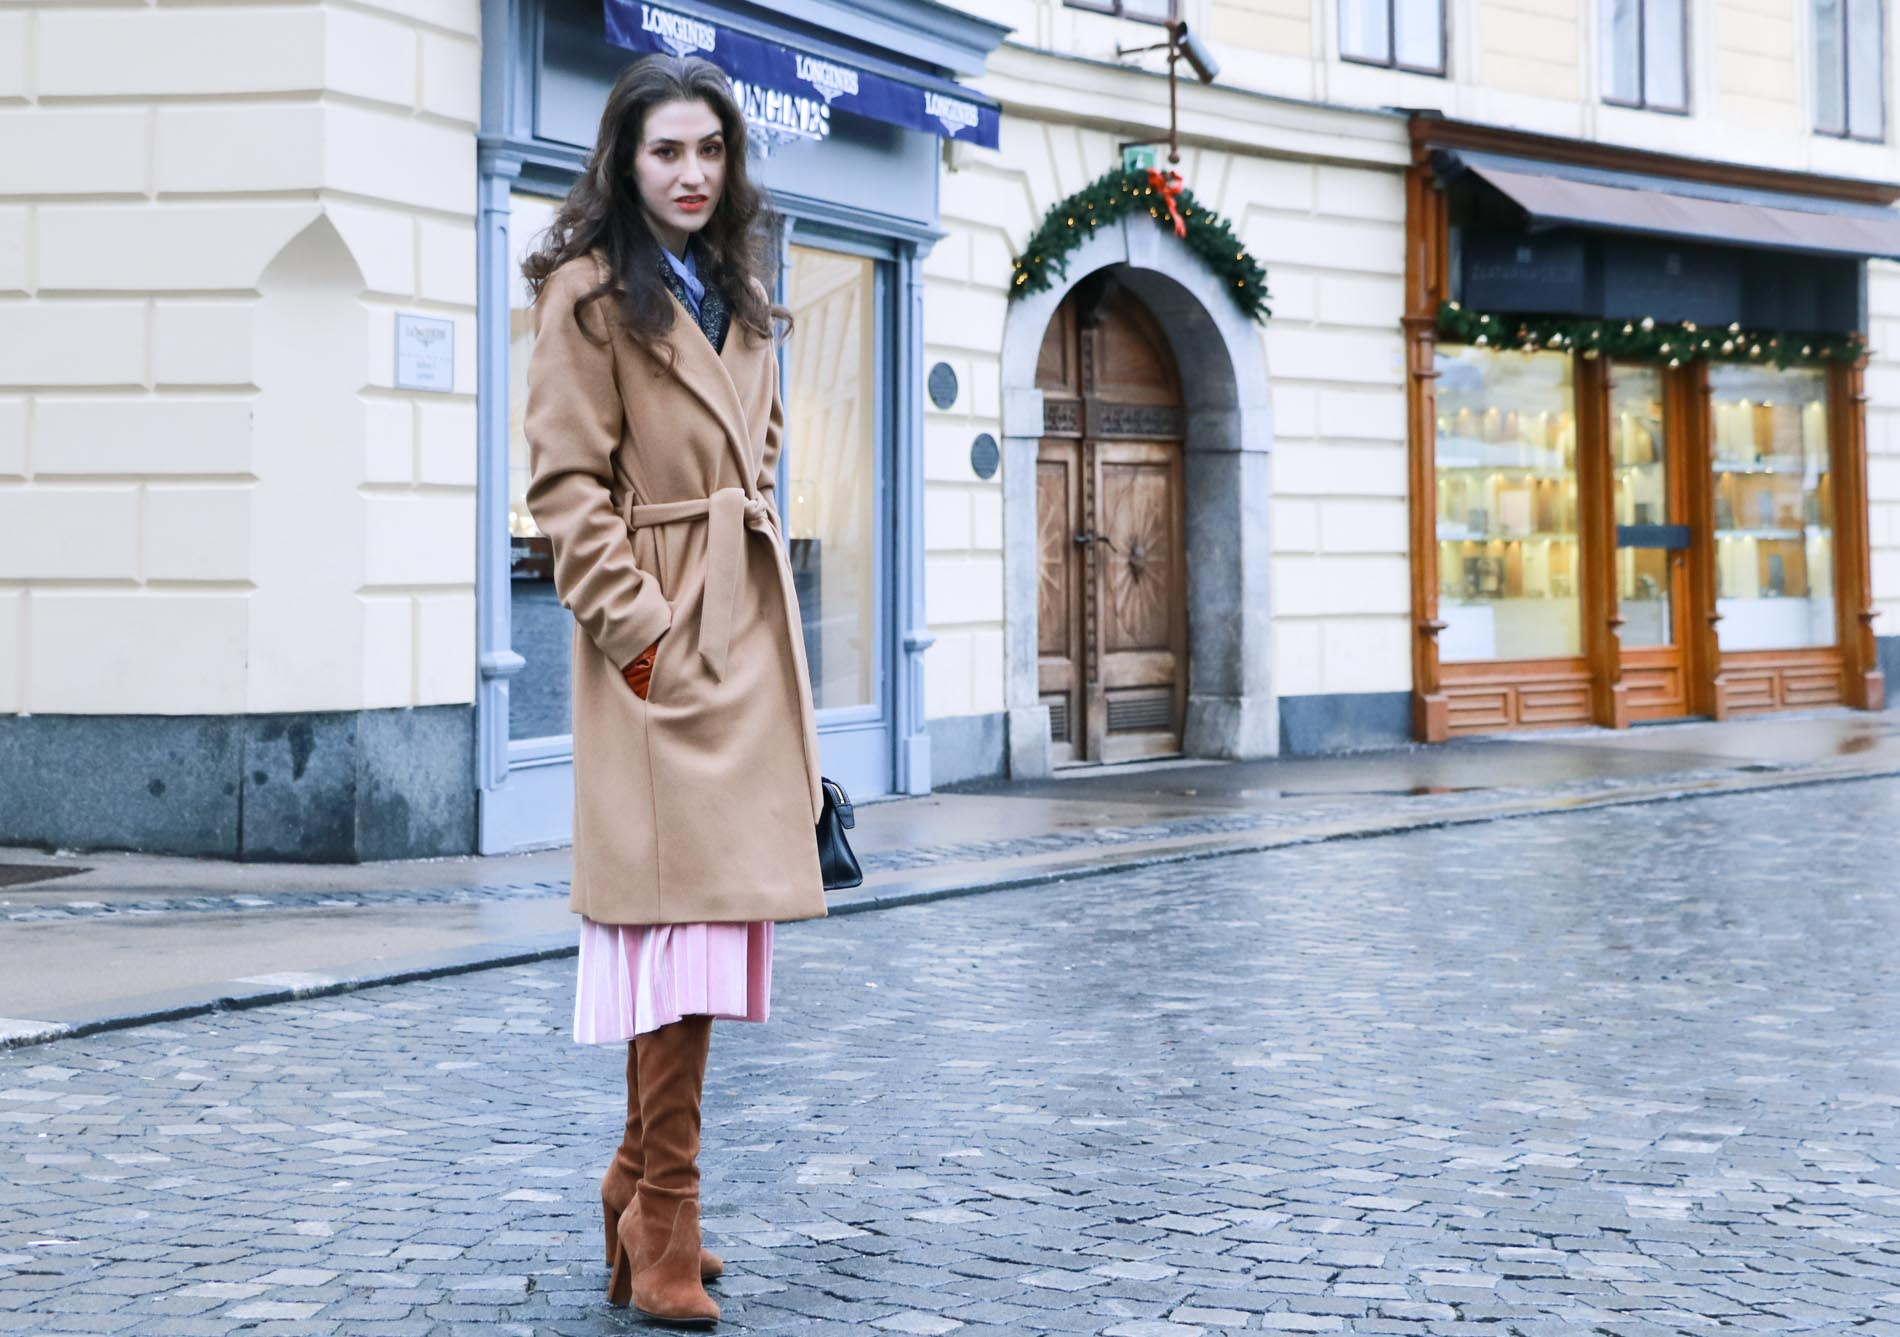 Fashion Blogger Veronika Lipar of Brunette from Wall Street wearing fashionable winter outfit, ESCADA wrap camel coat, pink velvet midi pleated skirt, brown Stuart Weitzman Highland over the knee boots, black top handle bag, leather gloves on the streets of Ljubljana